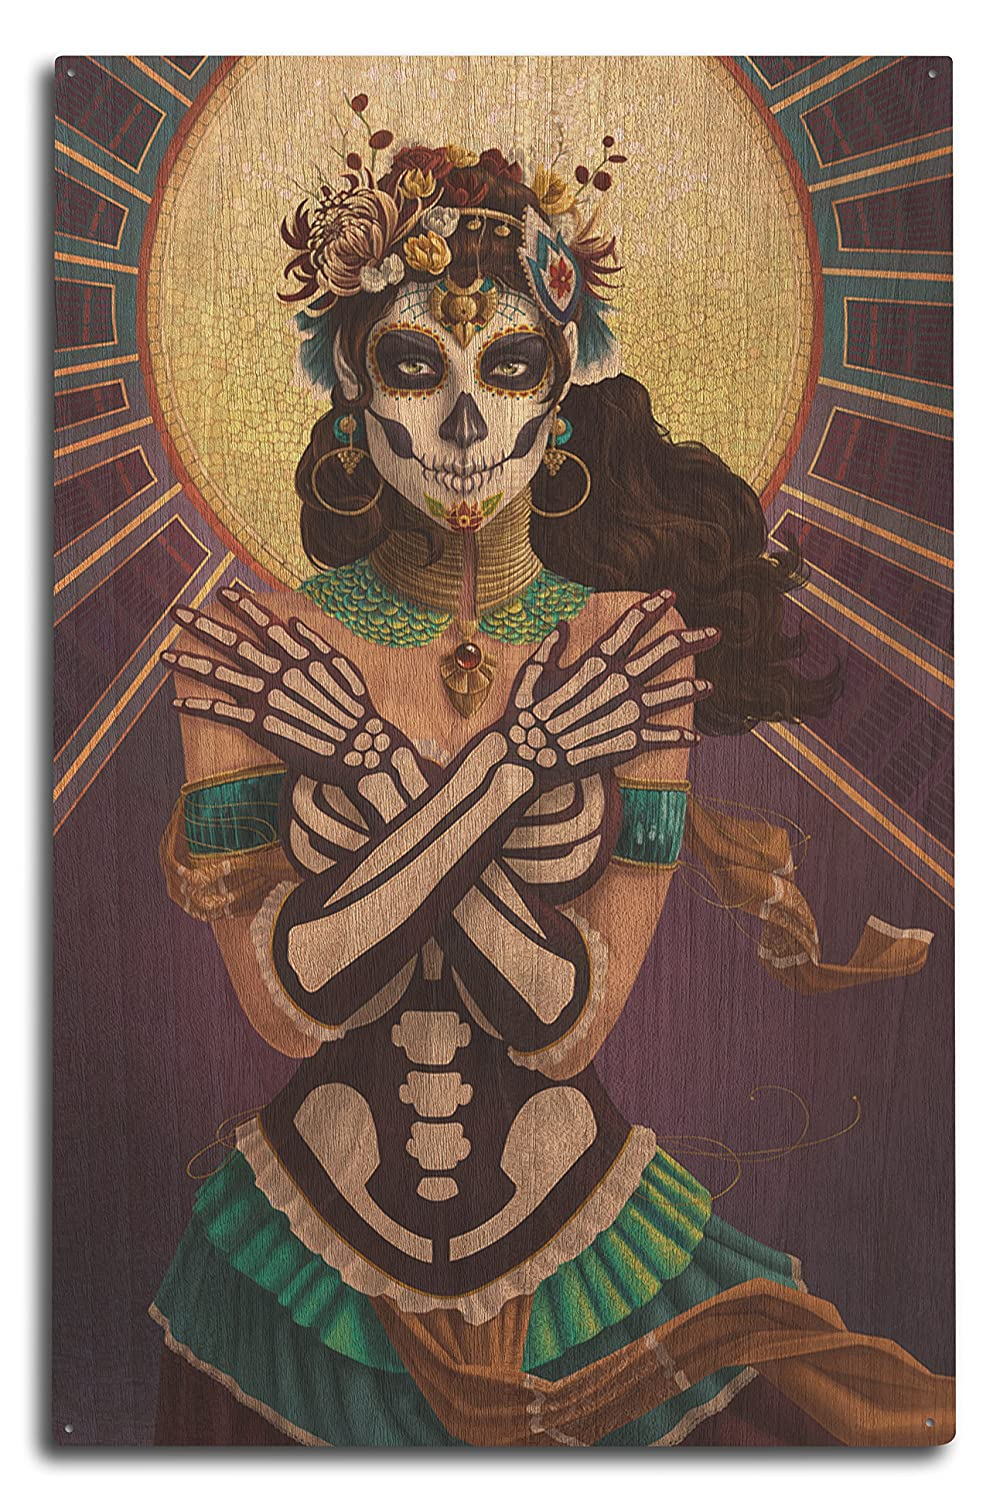 Day of the Dead – Crossbones 10 x 15 Wood Sign LANT-47346-10x15W B073672W8W 10 x 15 Wood Sign10 x 15 Wood Sign